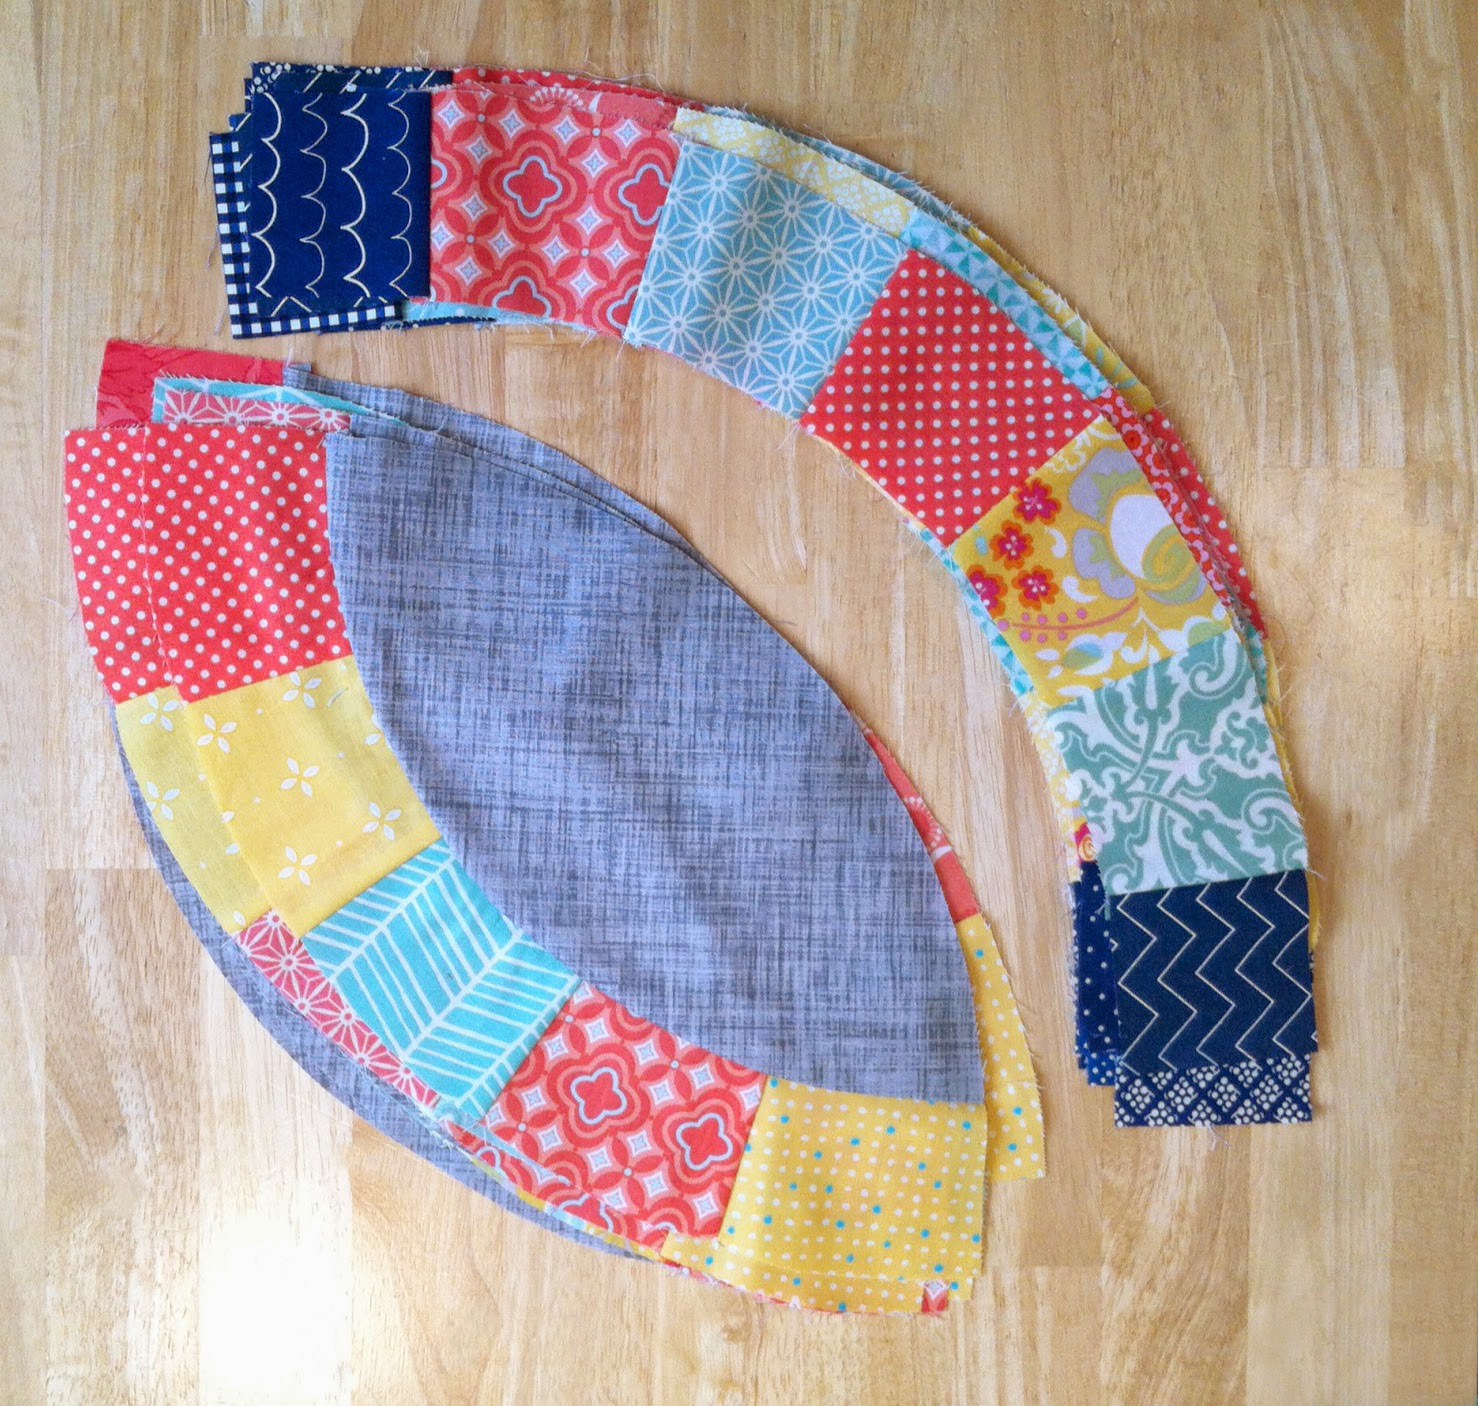 Kate's Big Day quilt